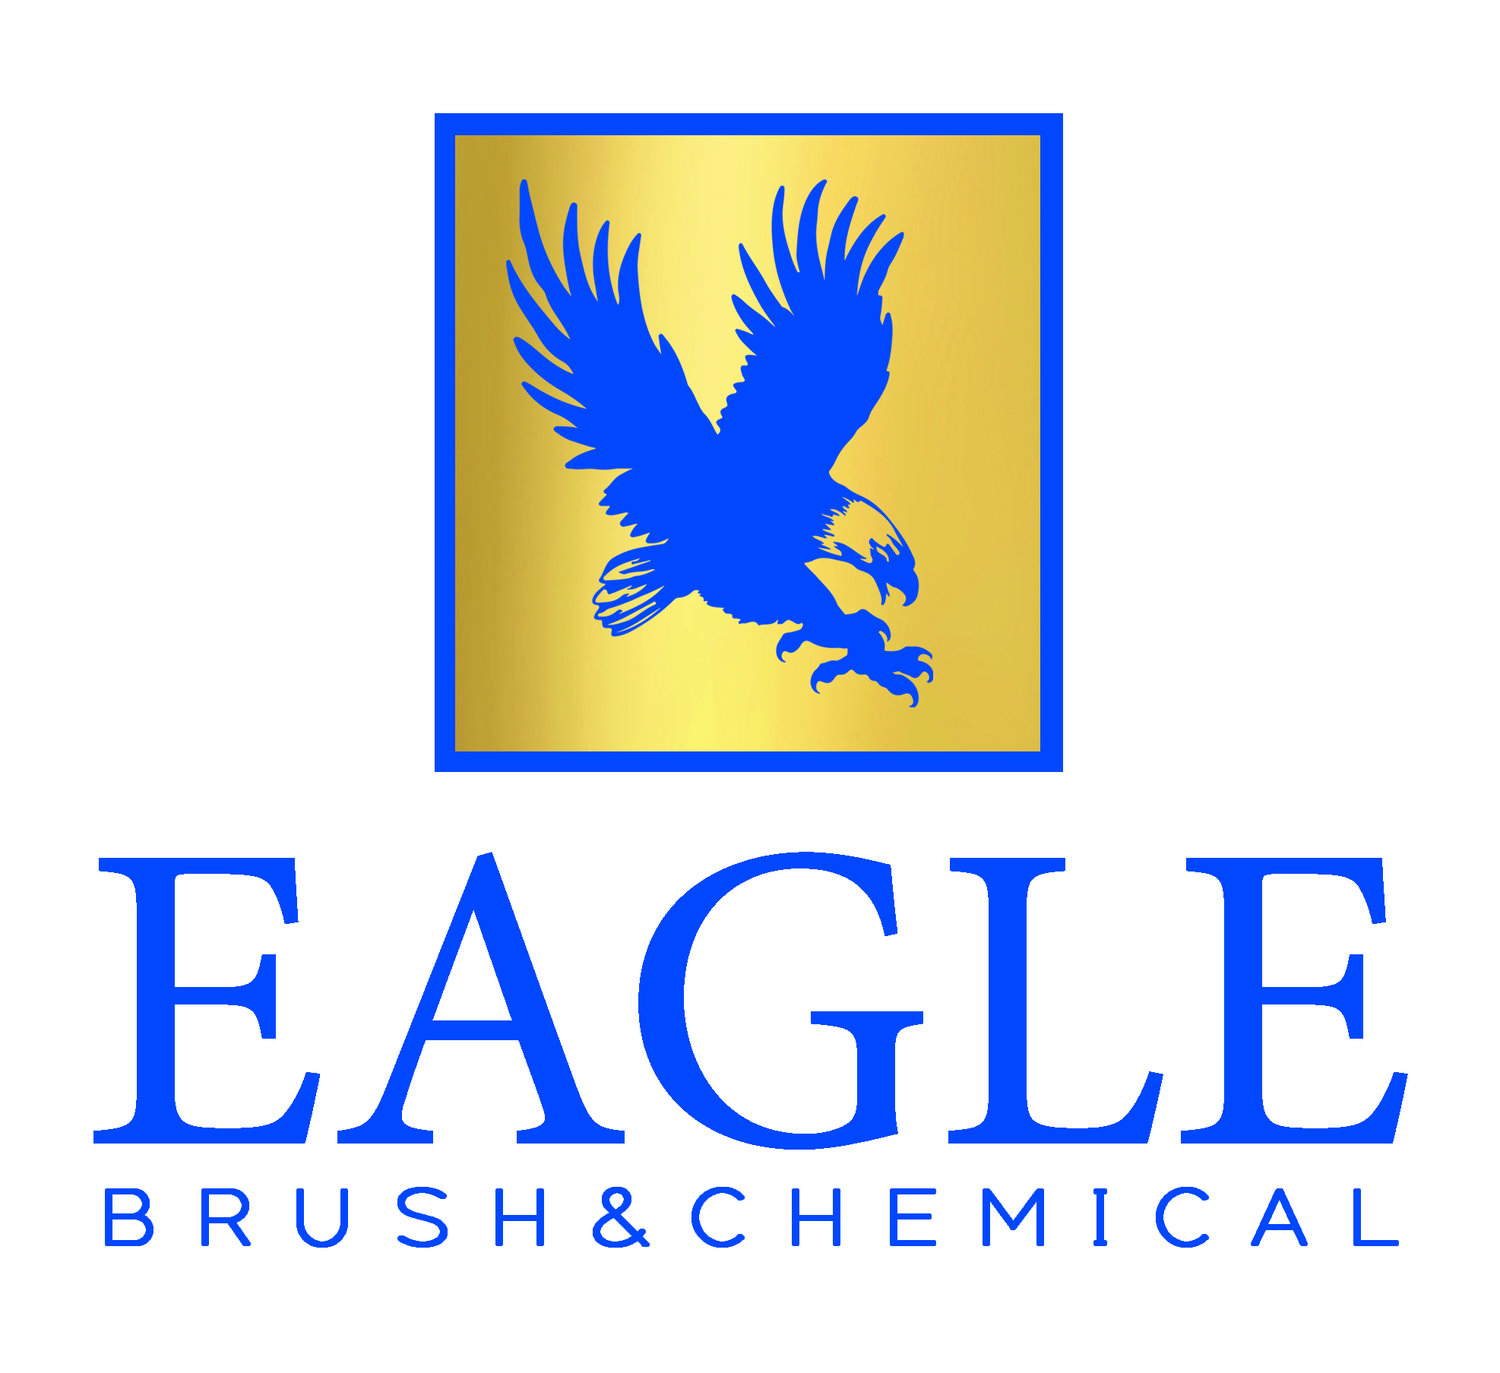 Eagle Brush & Chemical